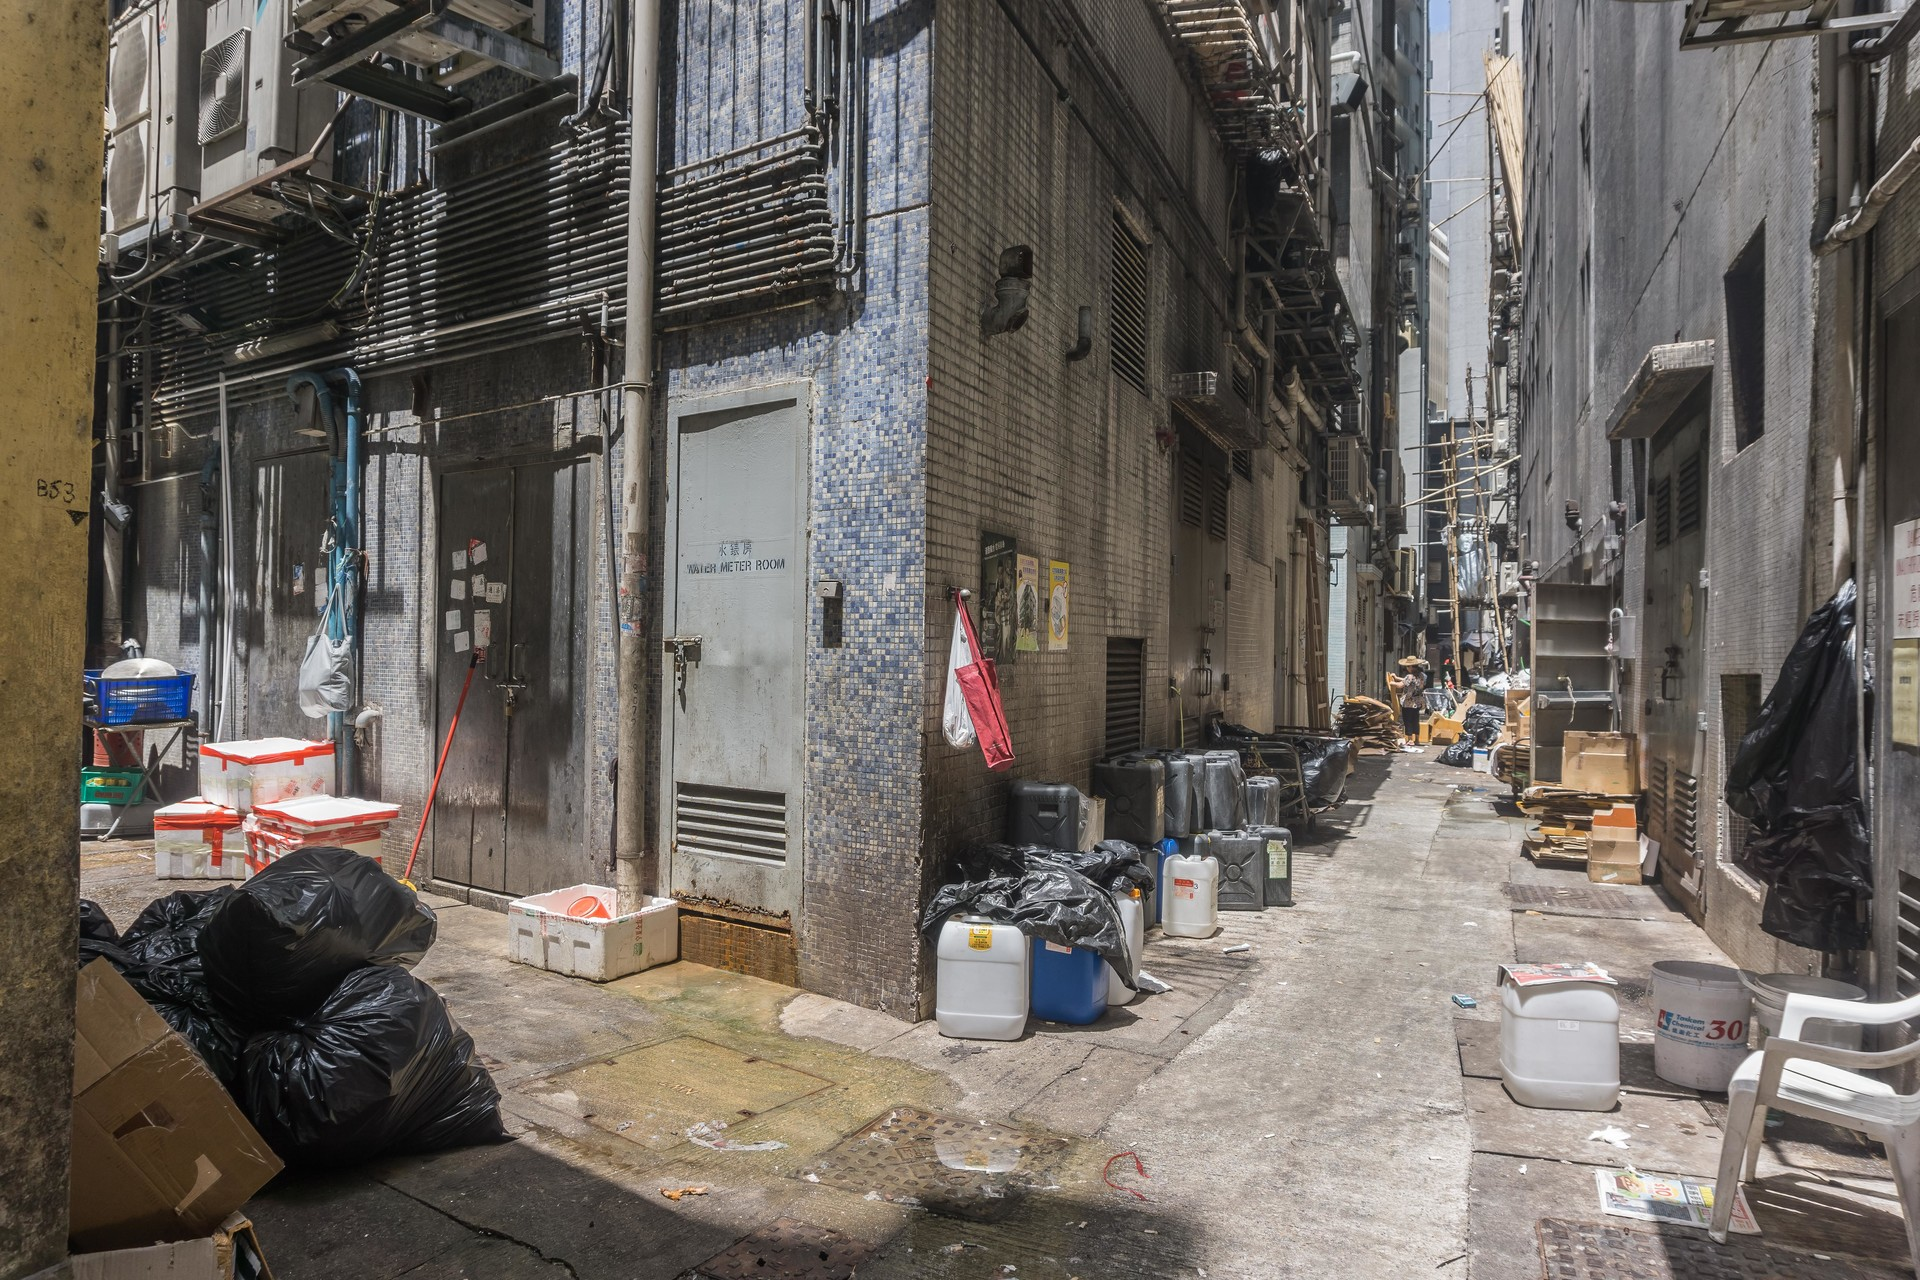 Anton tenitsky hong kong slums 125 fotoref